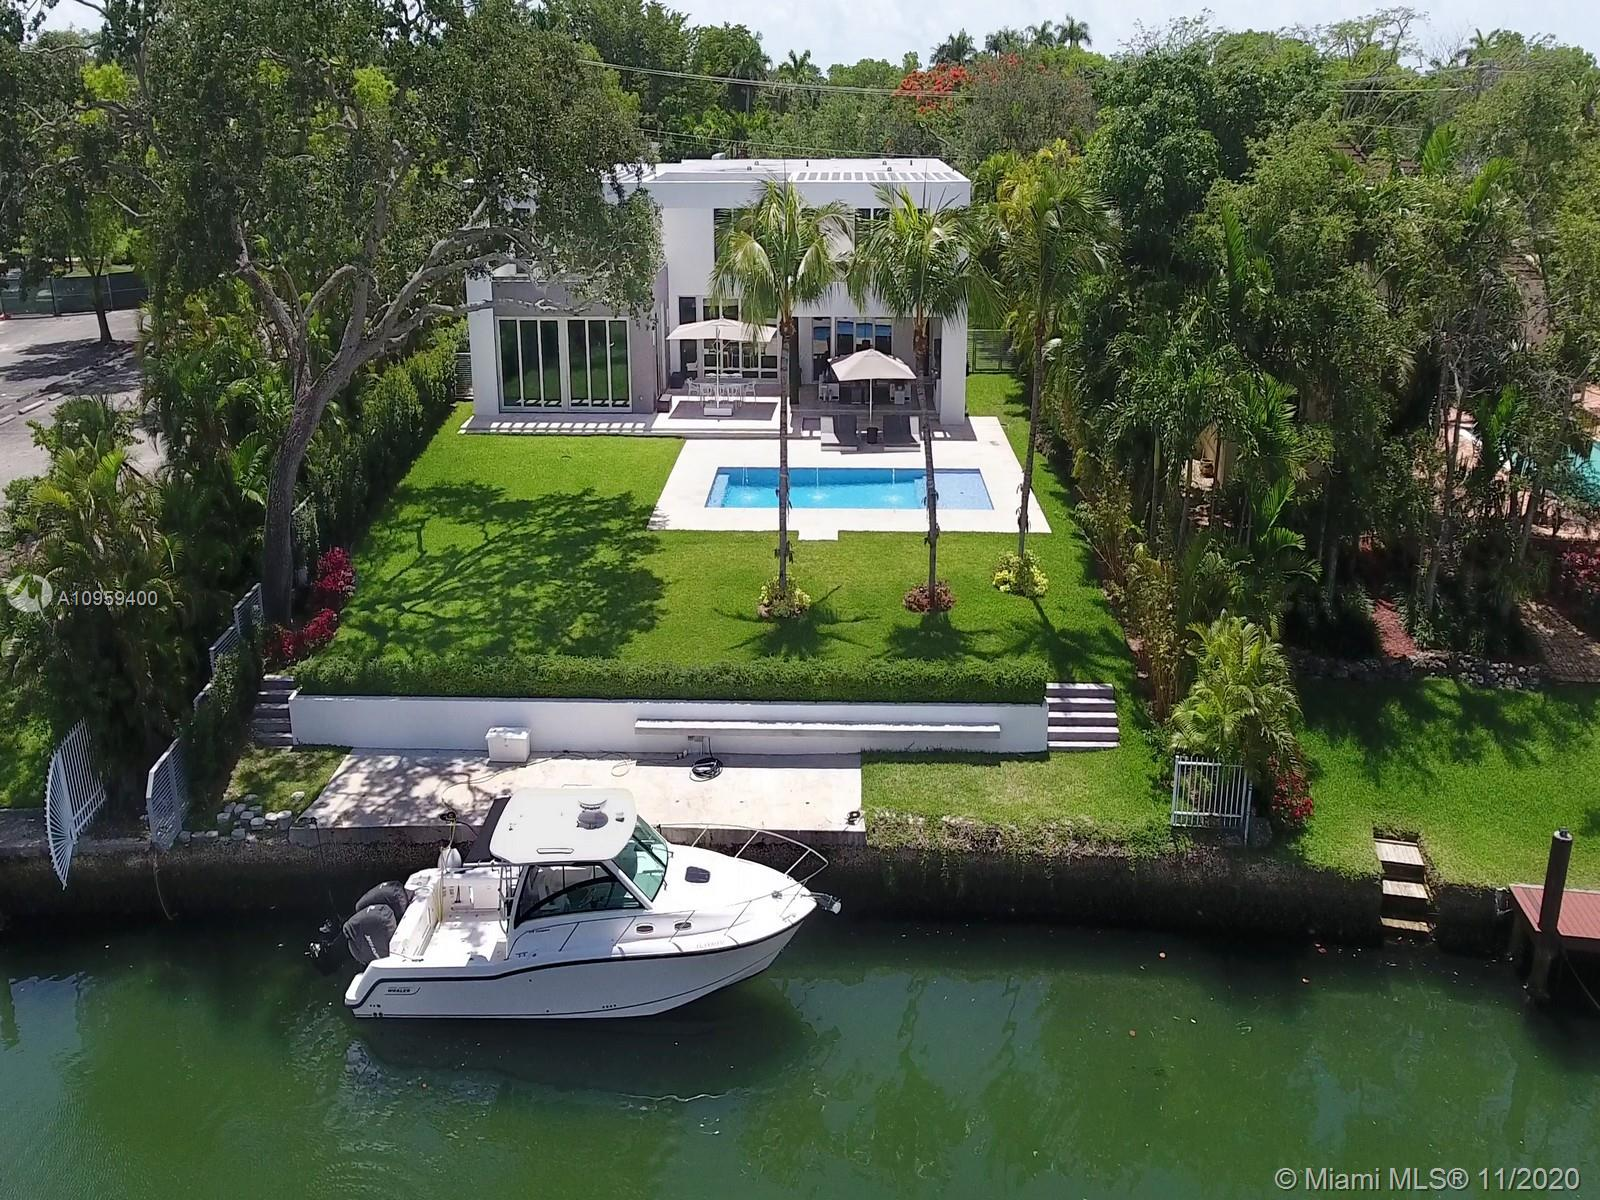 Beautiful new modern home, located on the Coral Gables Waterway. Built in 2017 this home is in a great location, has 6 bedrooms and 7 1/2 bathrooms, gated with a 2 car garage, concrete roof, impact glass throughout, state of the art kitchen and appliances, marble floors, generator for the full house and a stunning outdoor kitchen area and terraces.  Functional floor plan. Easy to show.